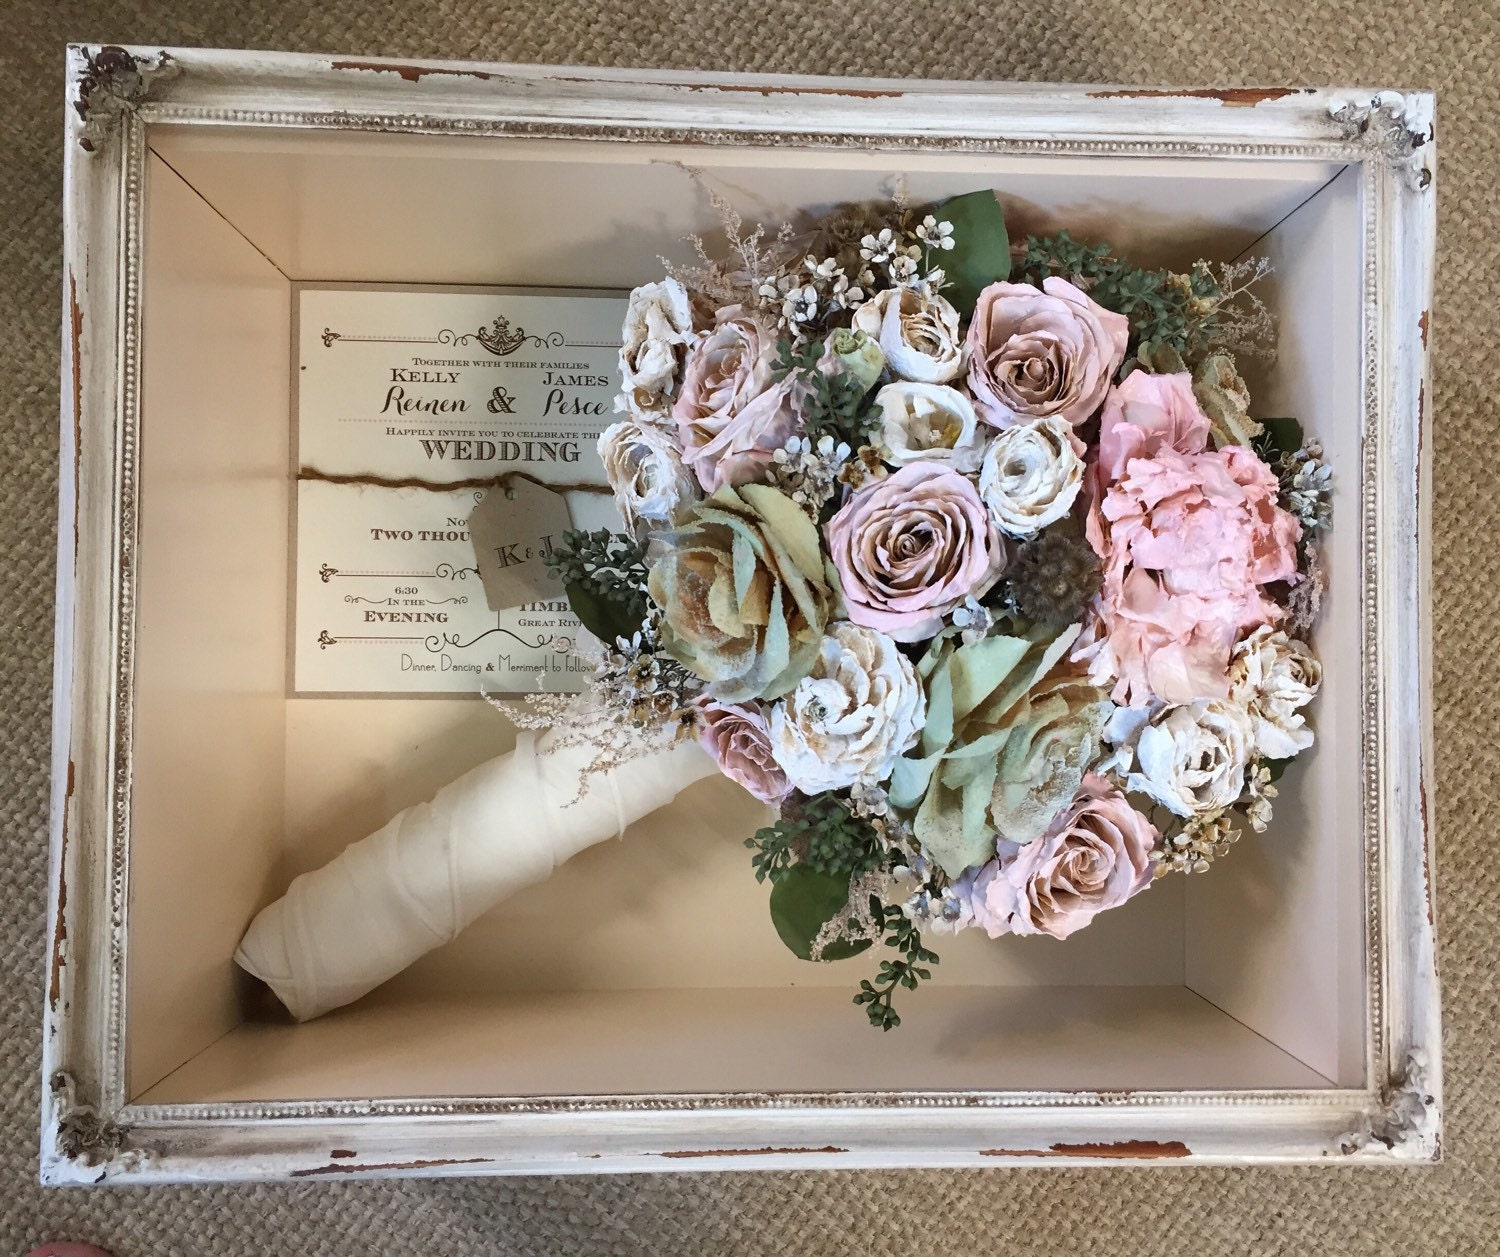 Floral Preservation for Wedding Bouquets in Shadow Box Local